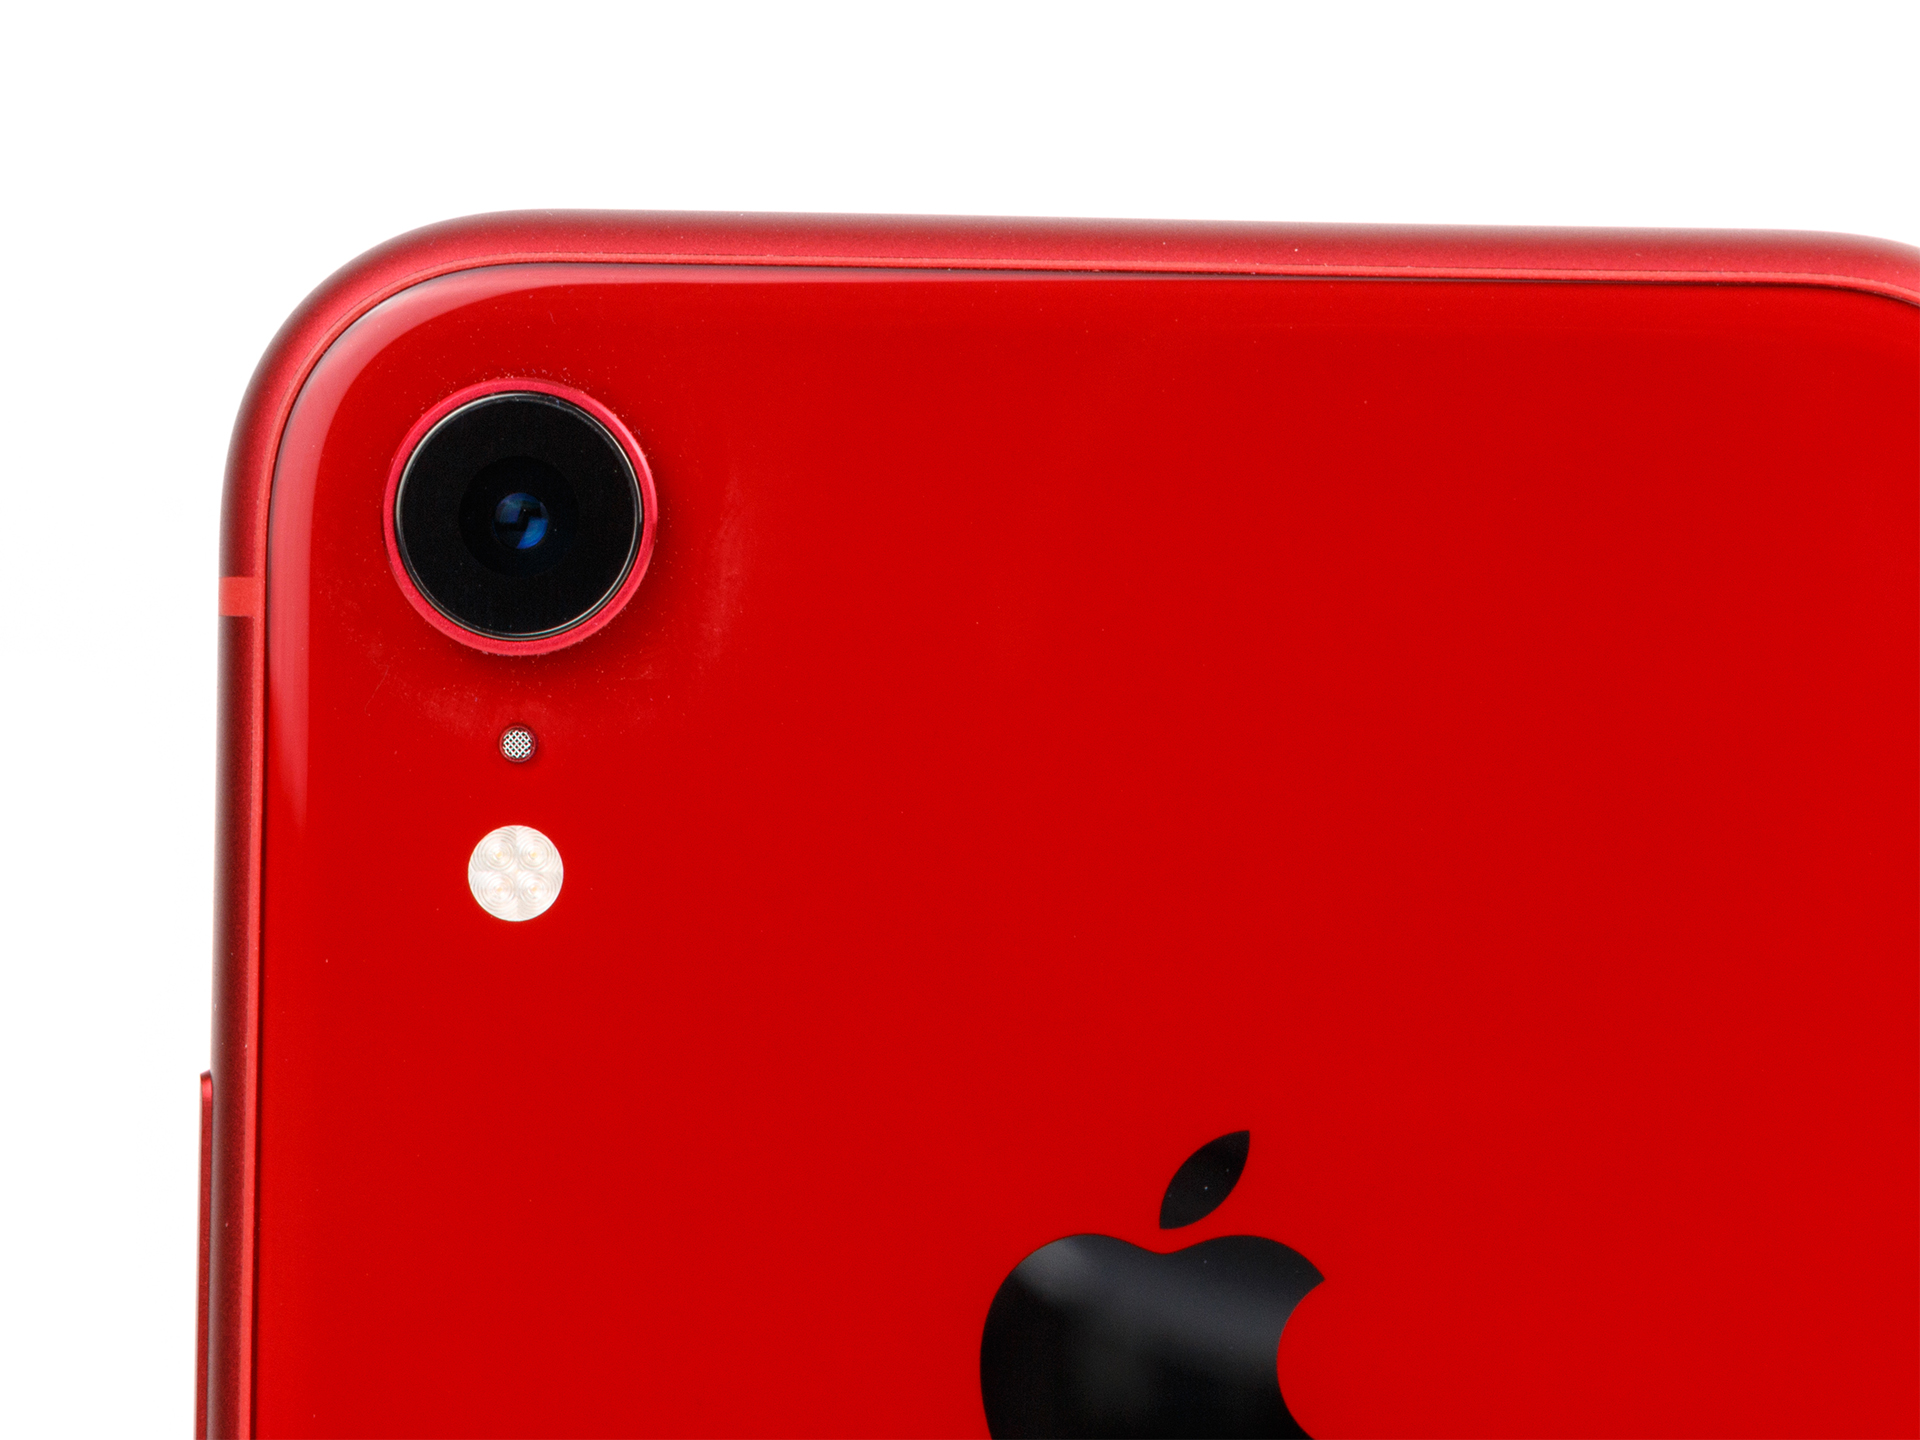 Apple iPhone XR Smartphone Review - NotebookCheck net Reviews